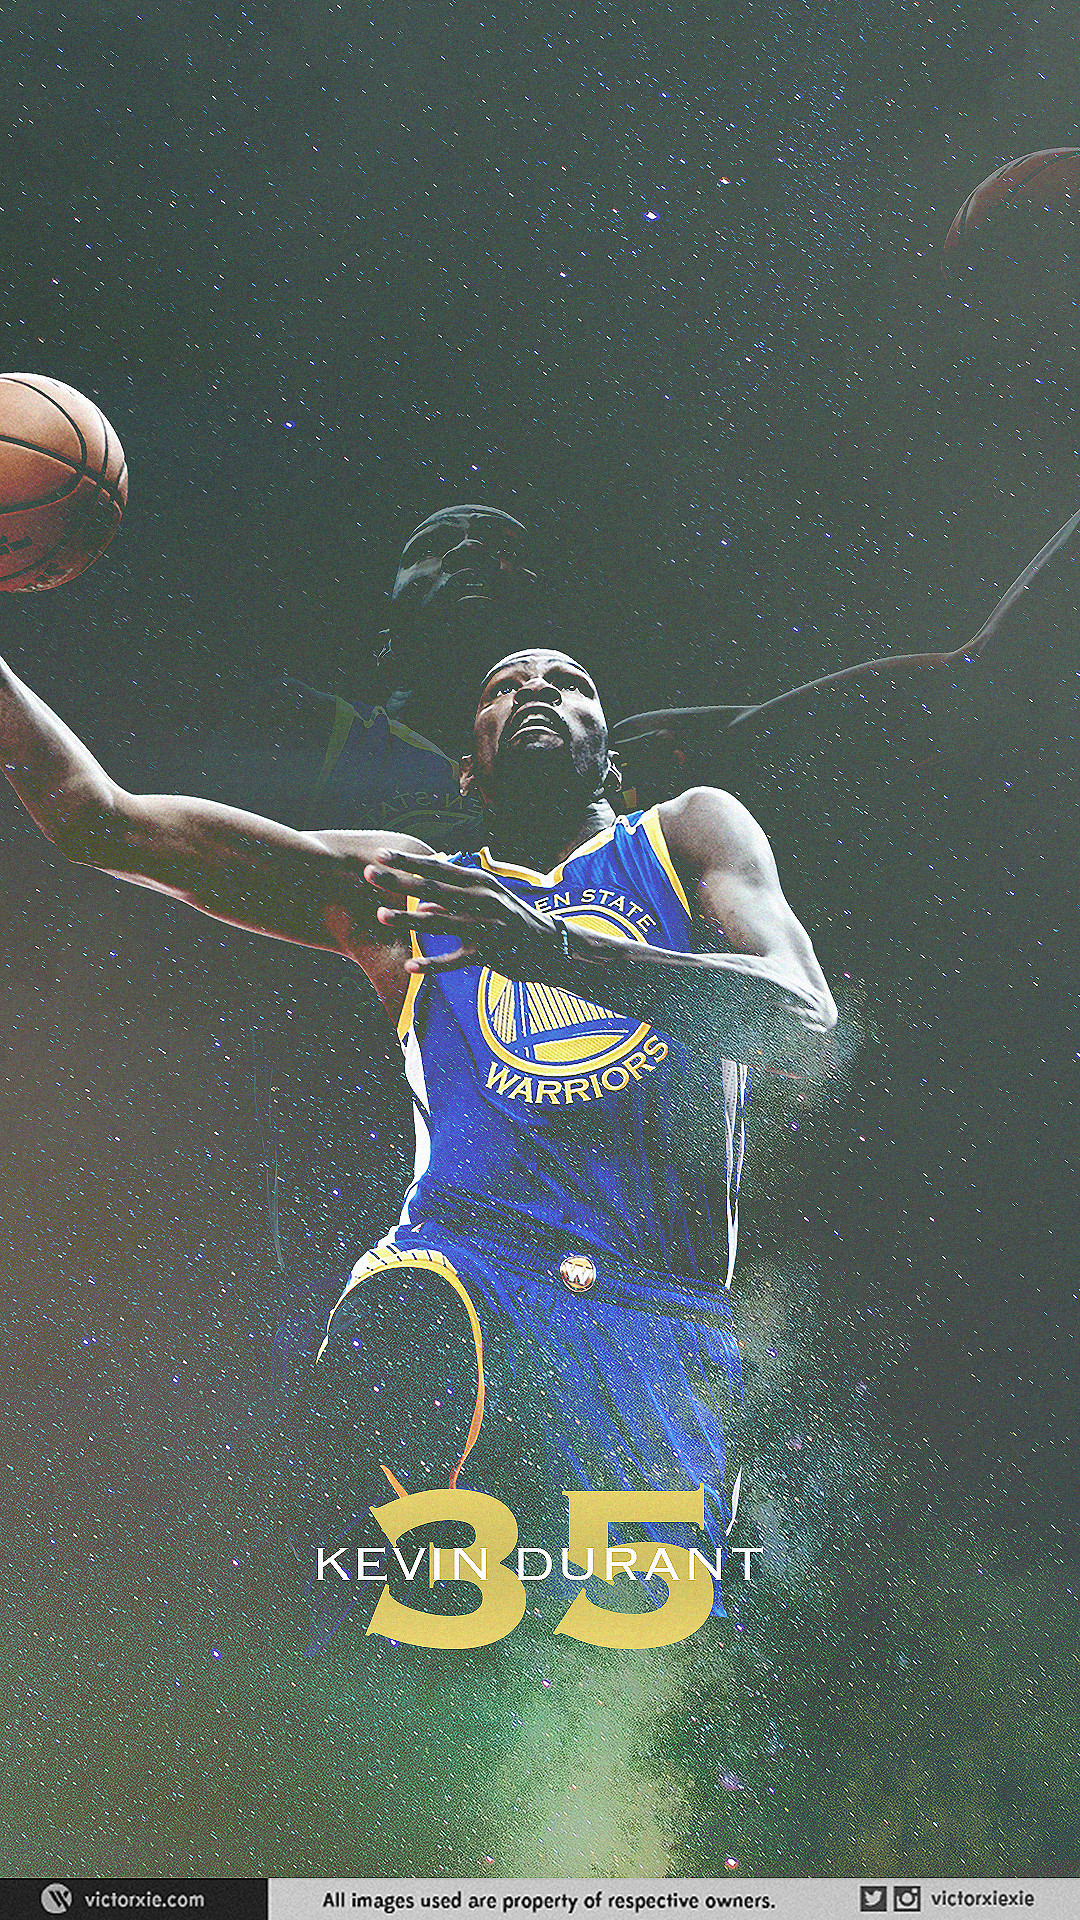 1080x1920 Kevin Durant. Download: Mobile Wallpaper / Desktop Wallpaper